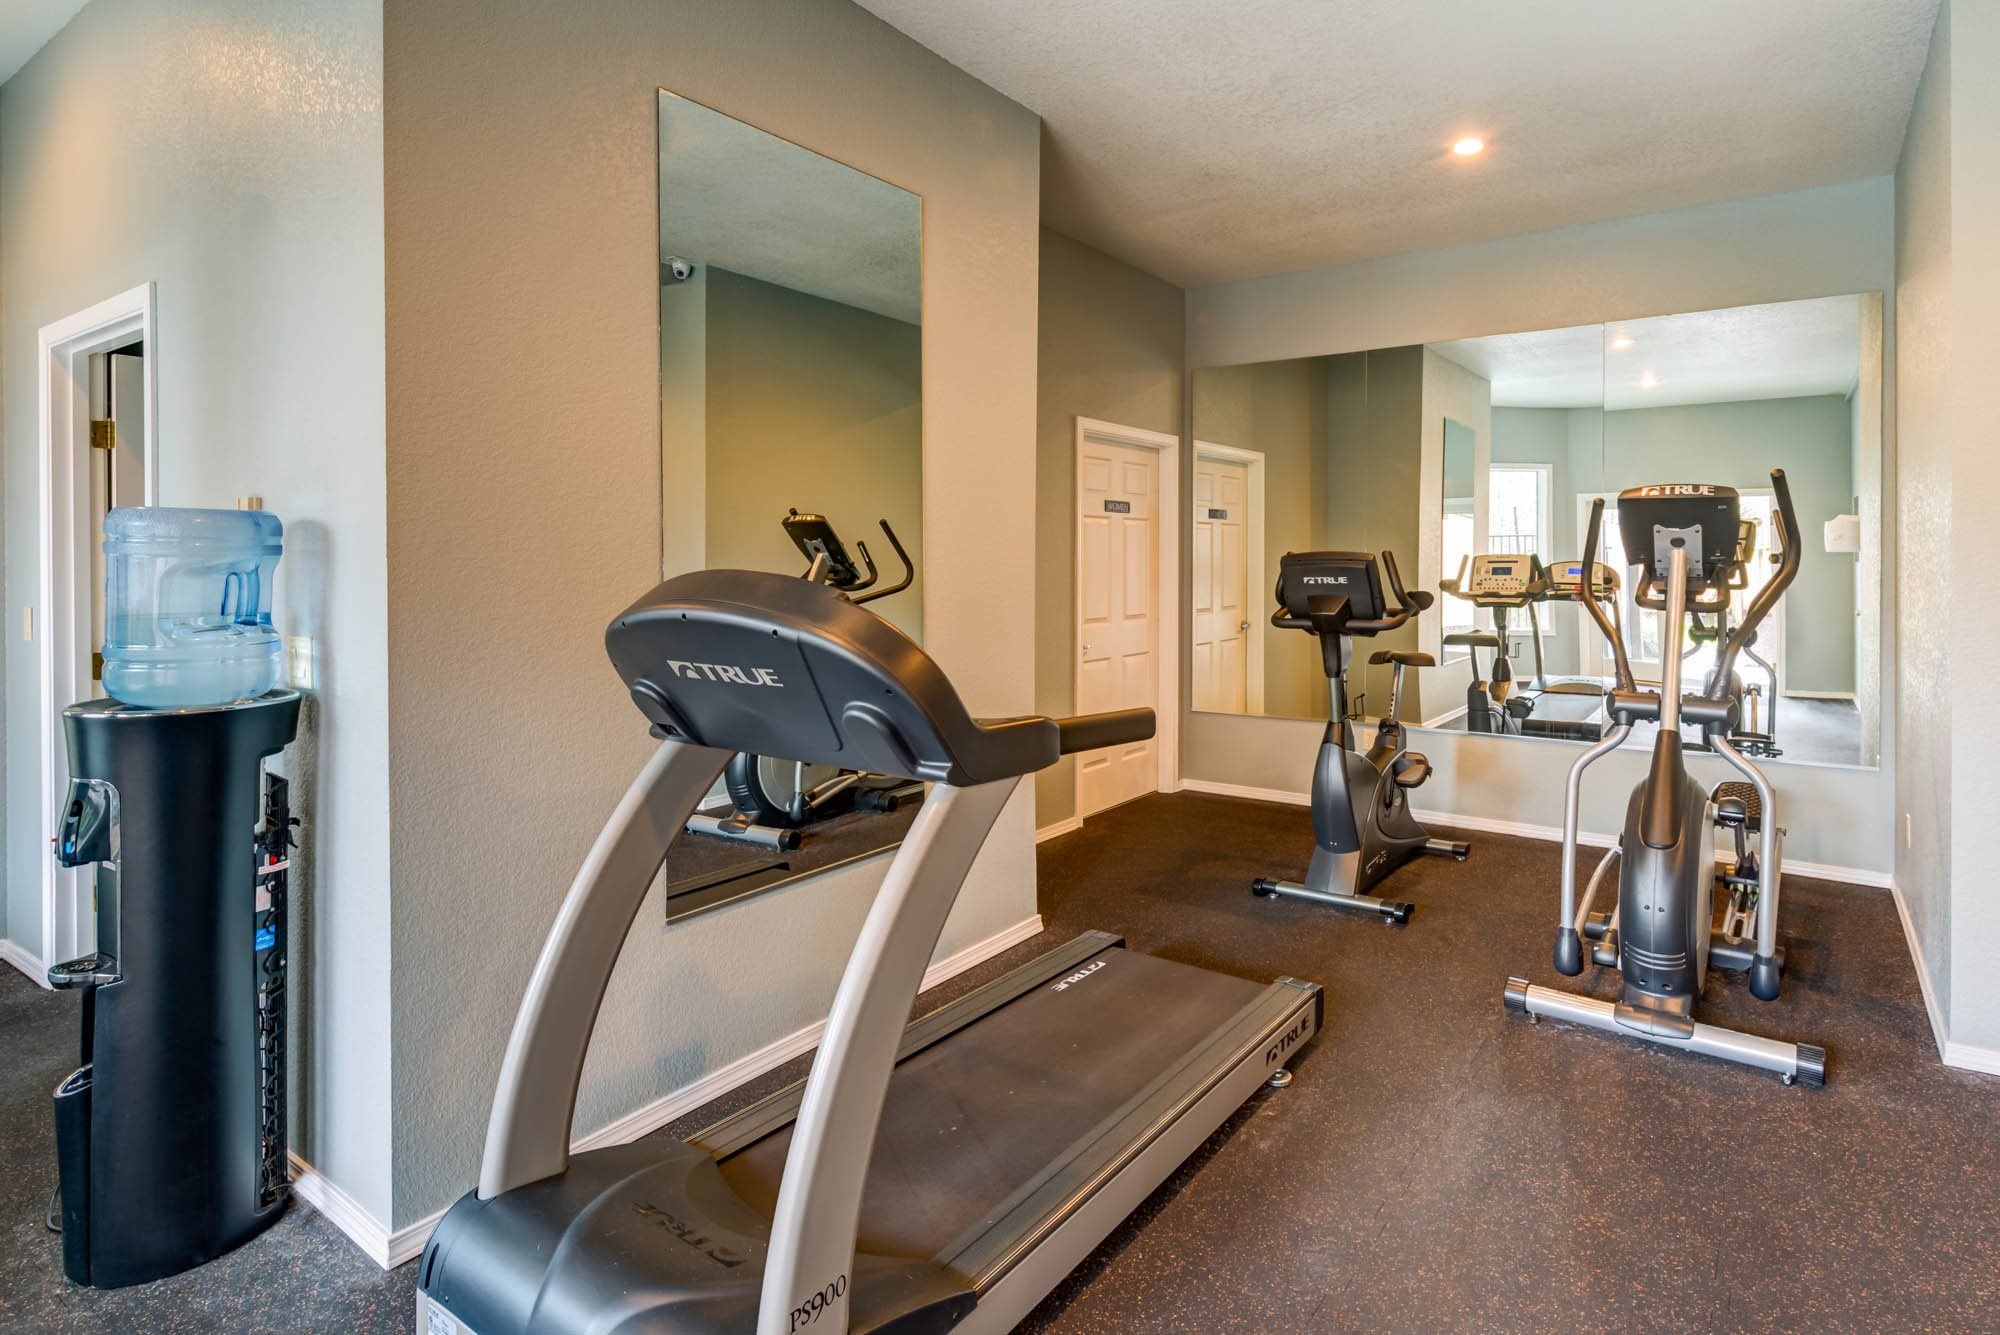 State-of-the-Art Fitness Center at Westview Village, Renton, WA,98055